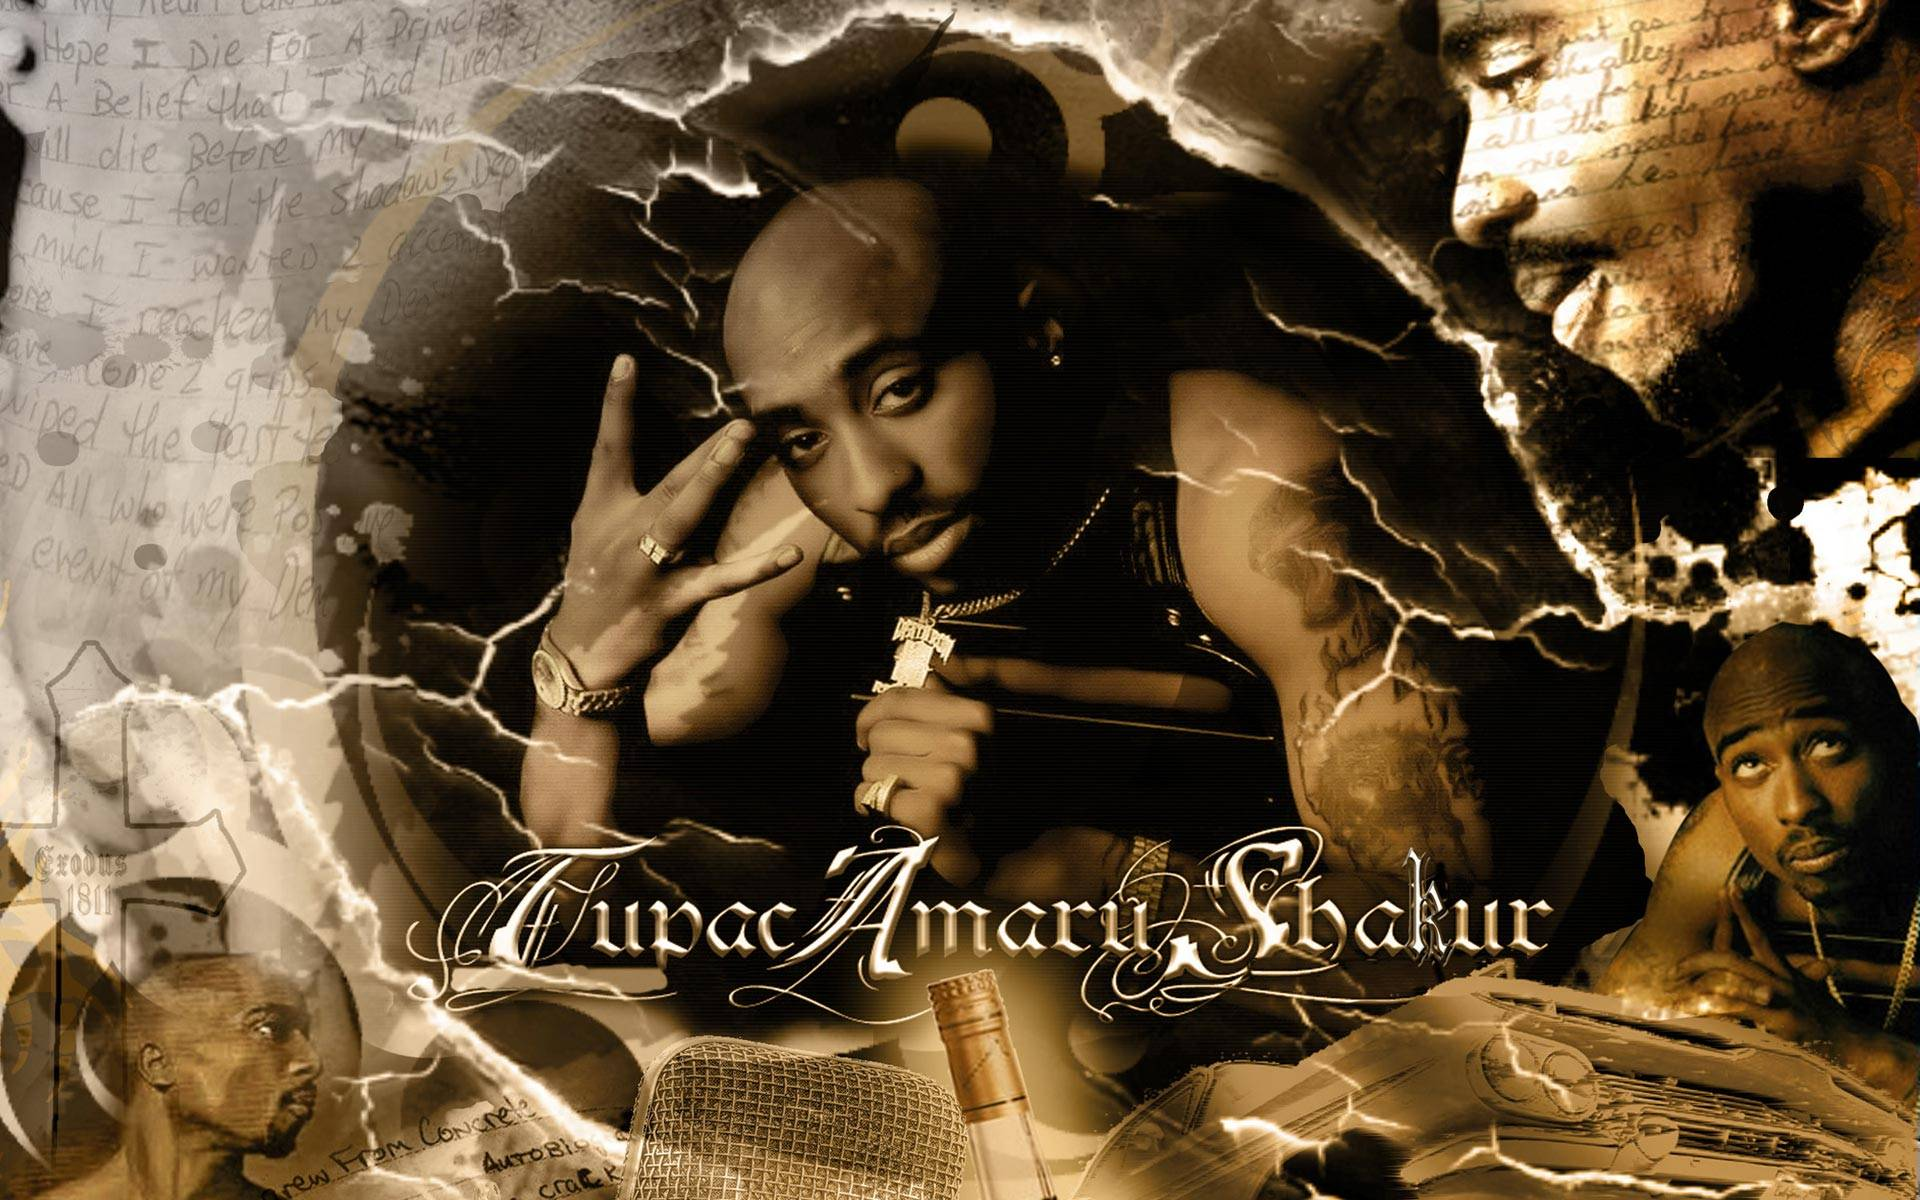 2Pac Shakur See No Changes Wallpaper   2pac Wallpaper 1920x1200